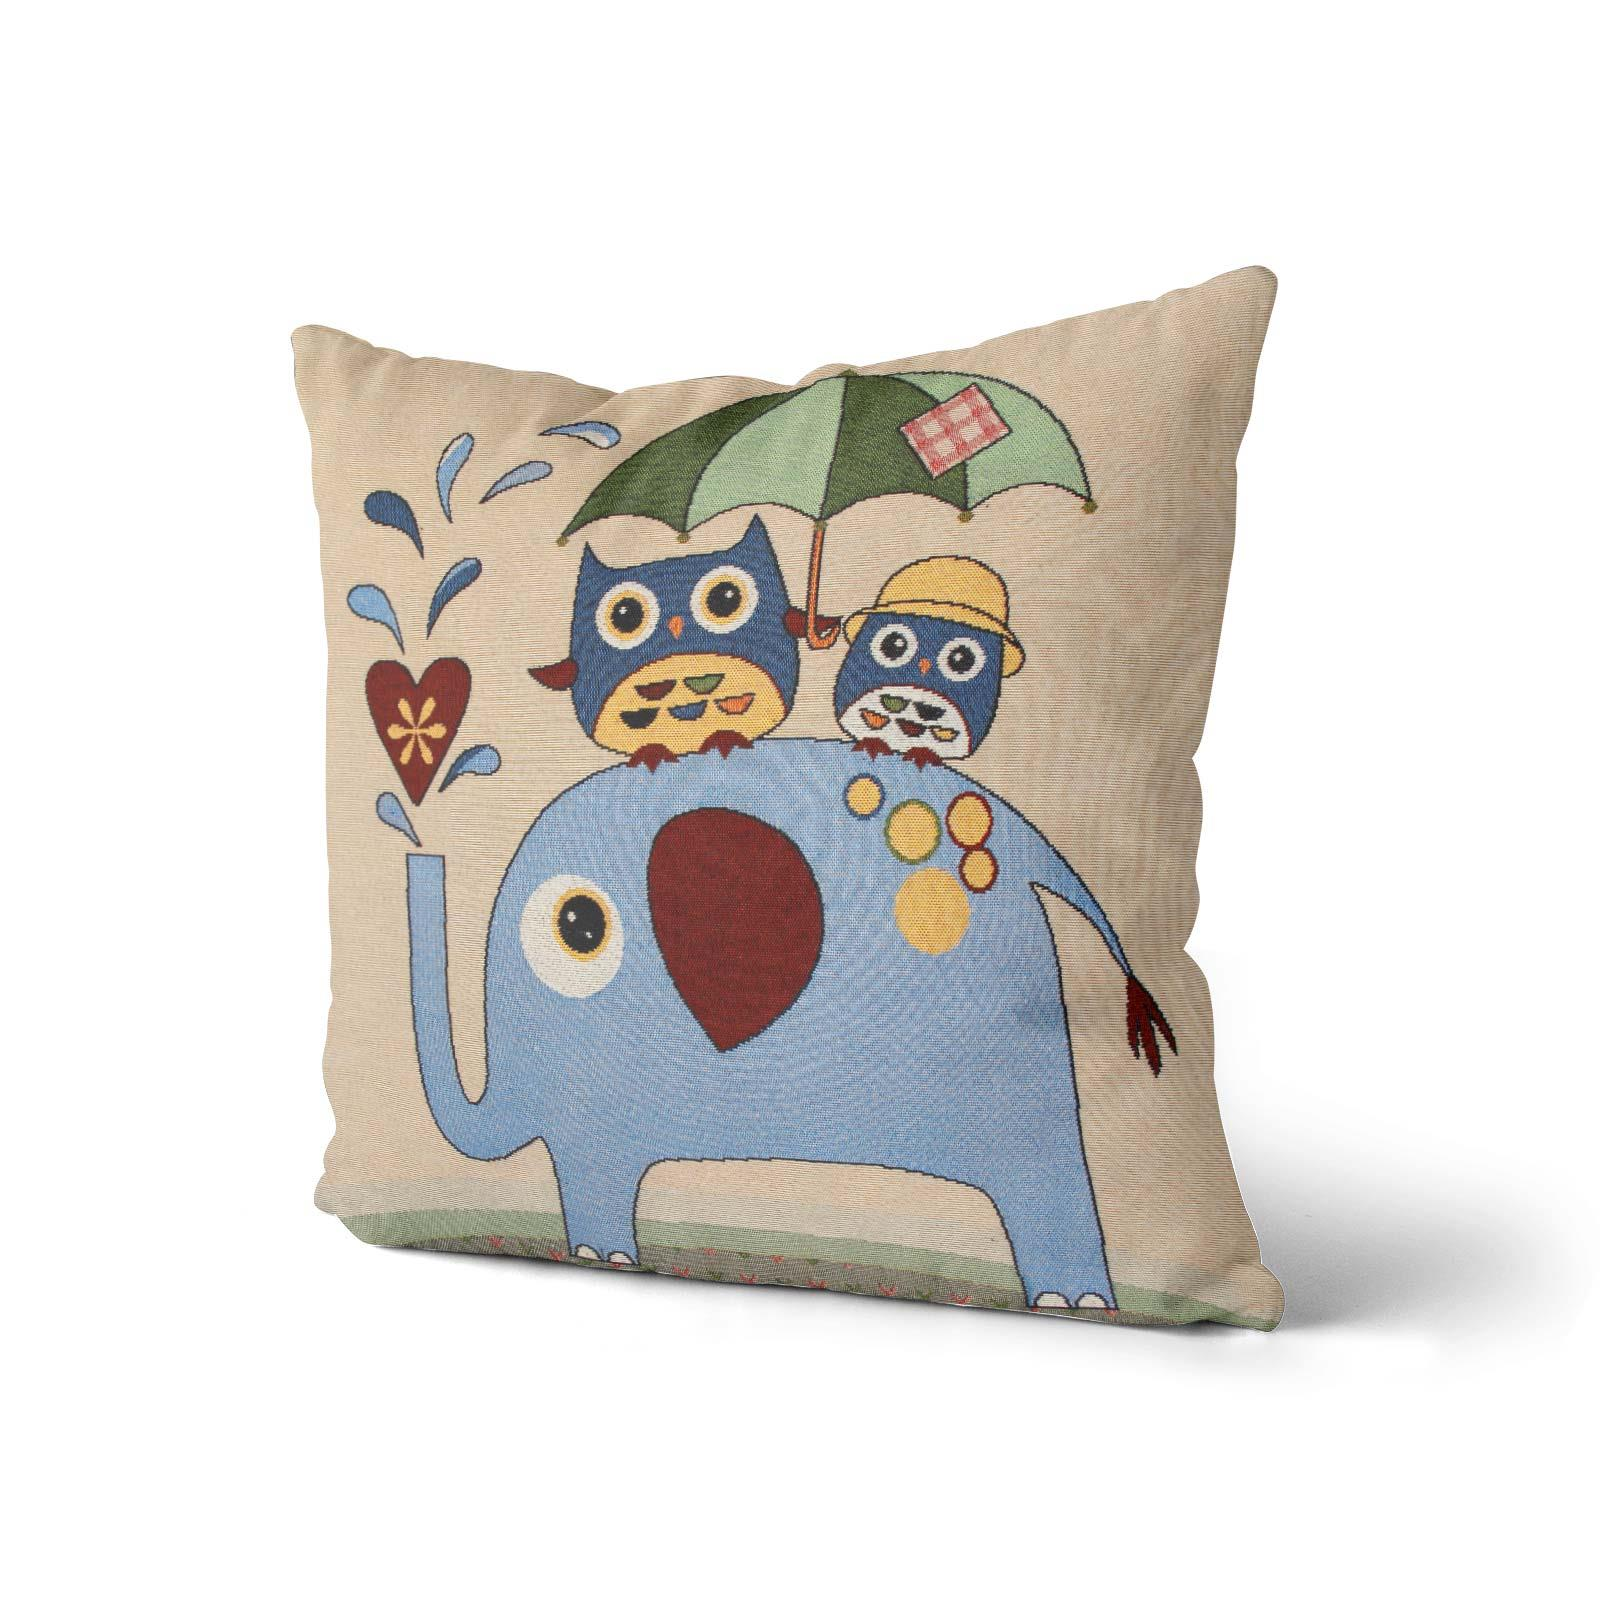 Tapestry-Cushion-Covers-Vintage-Pillow-Cover-Collection-18-034-45cm-Filled-Cushions thumbnail 49